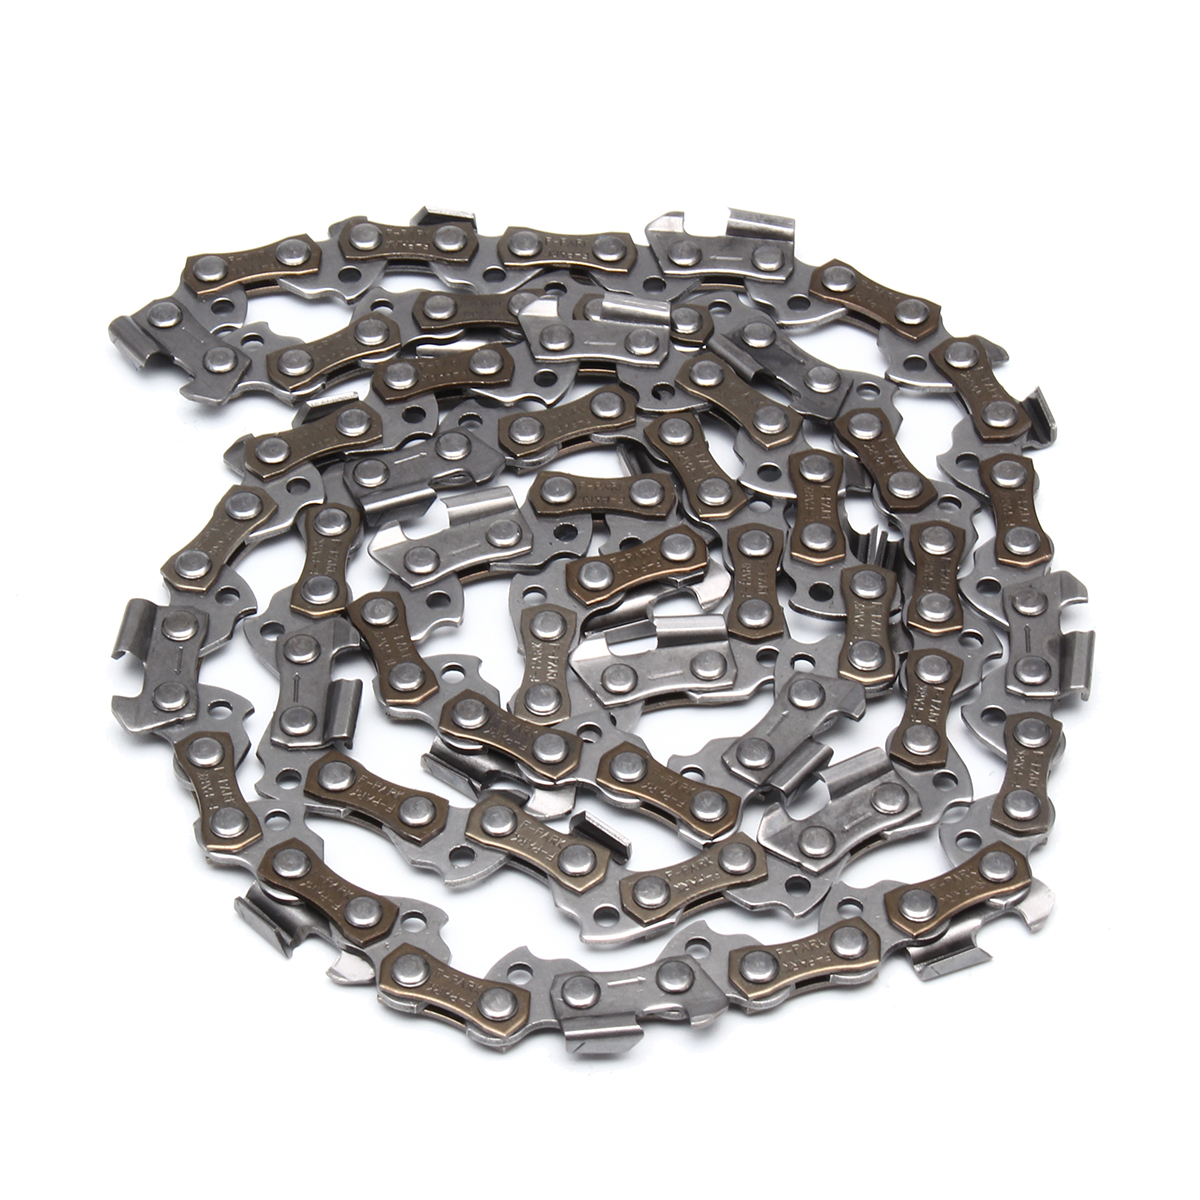 14 Inch Steel Chain Saw Guide Bar with 2pcs Chains for Stihl Chainsaw 017 MS170 MS171